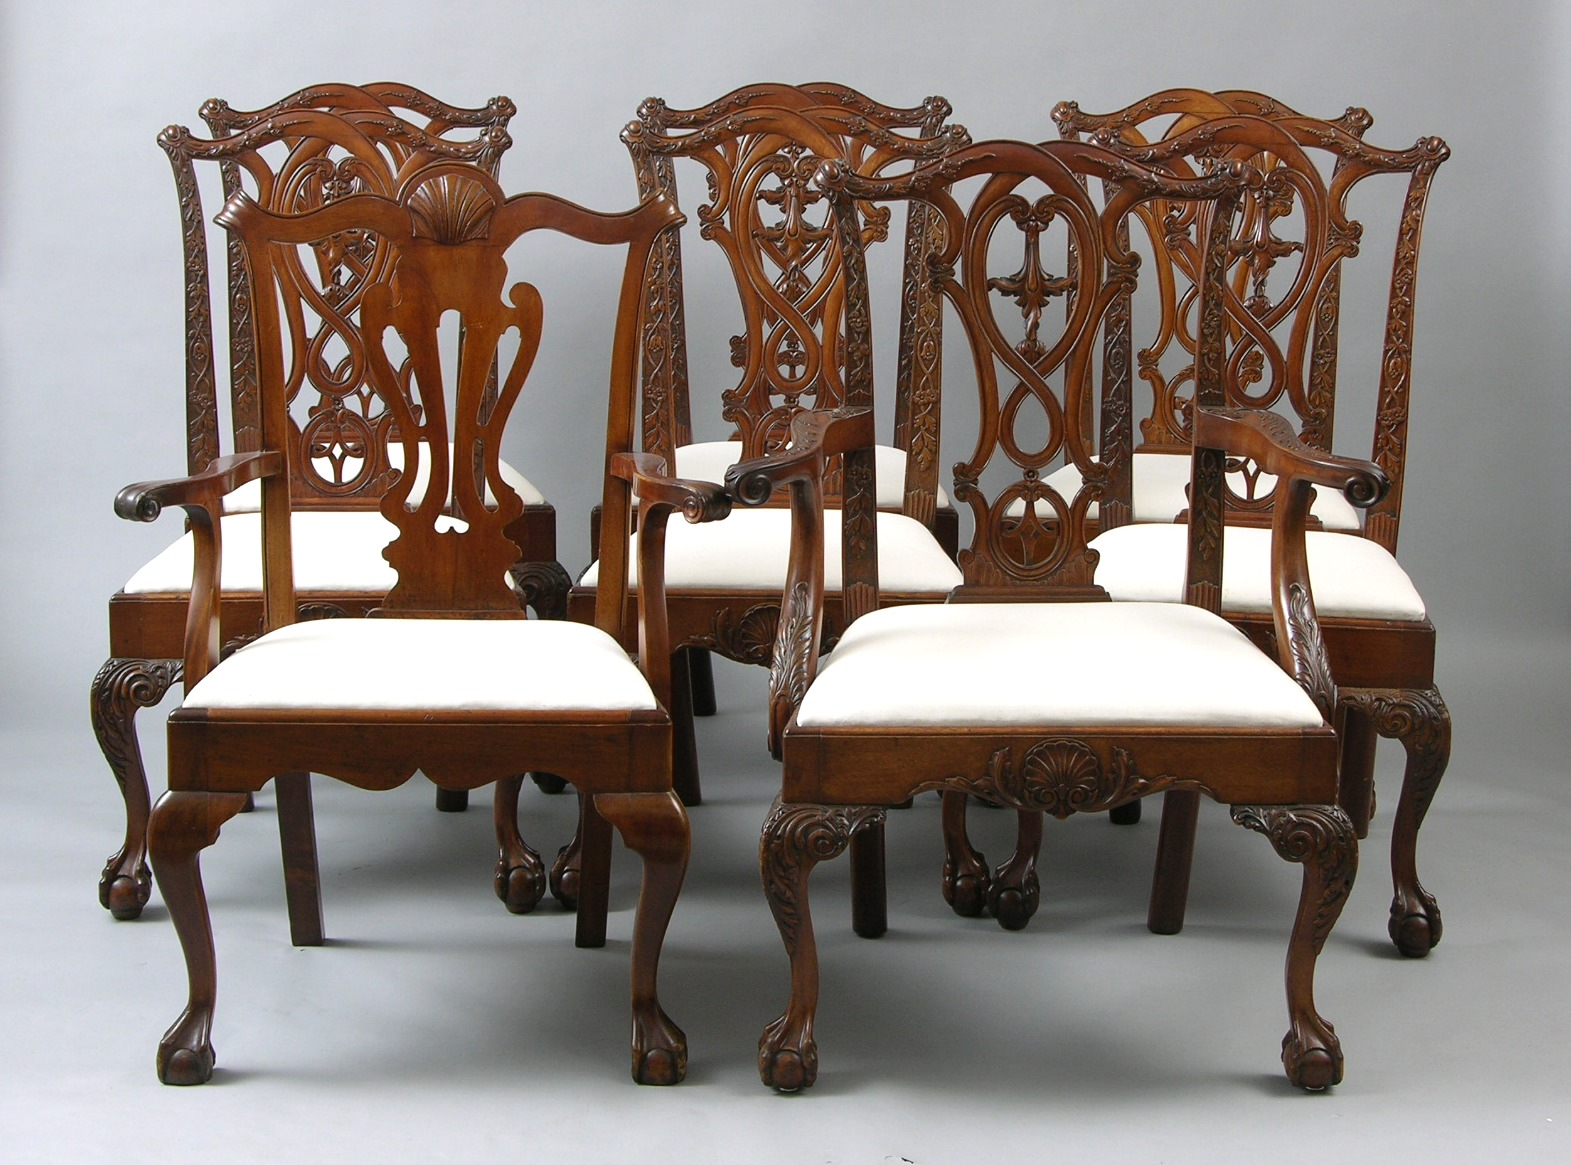 A Set of Late 19thEarly 20th Century Chippendale Style Dining